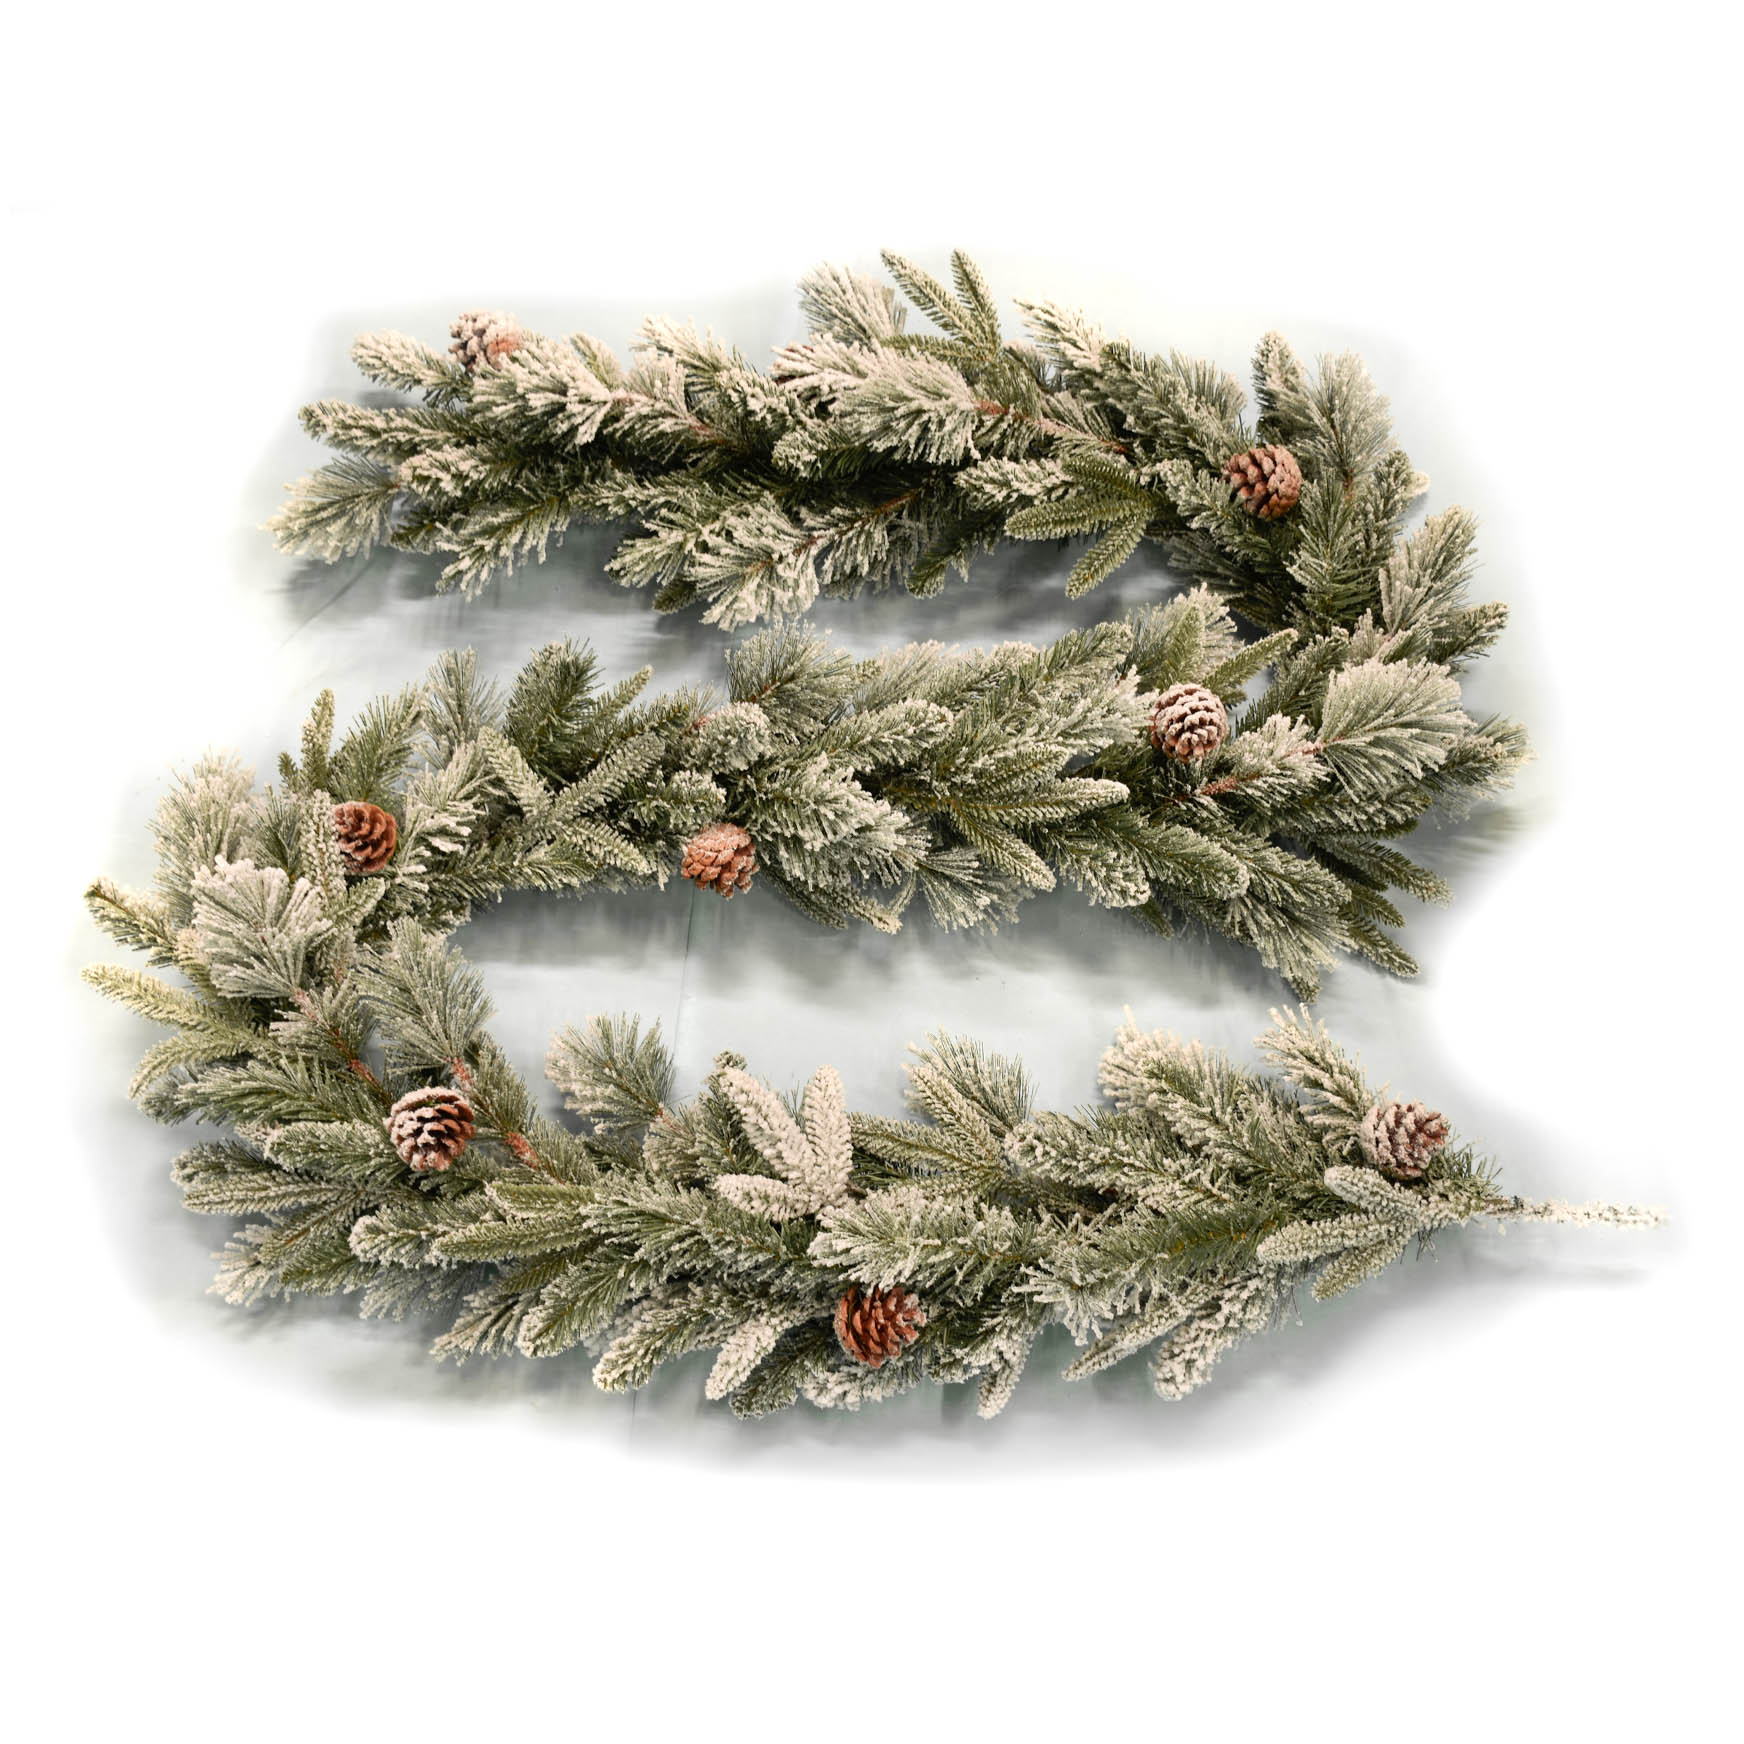 9__x_14___FLOCK_MIXED_ROSE_MARY_AND_EMERALD_ANGEL_GARLAND_WITH_PINE_CONES.jpg